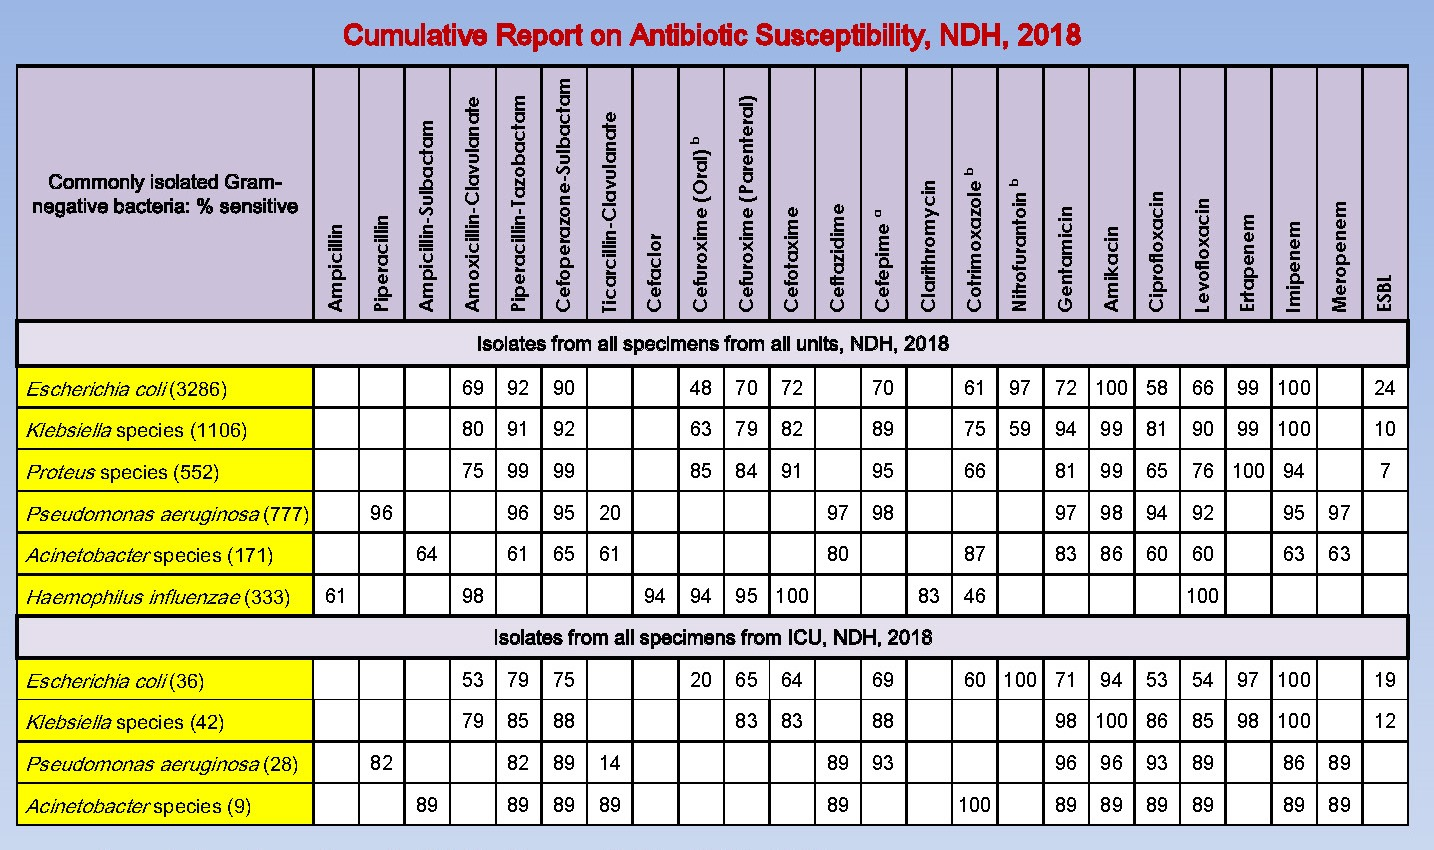 Table NTE-3. Antibiogram for Gram-negative bacterial isolates, NDH, 2018